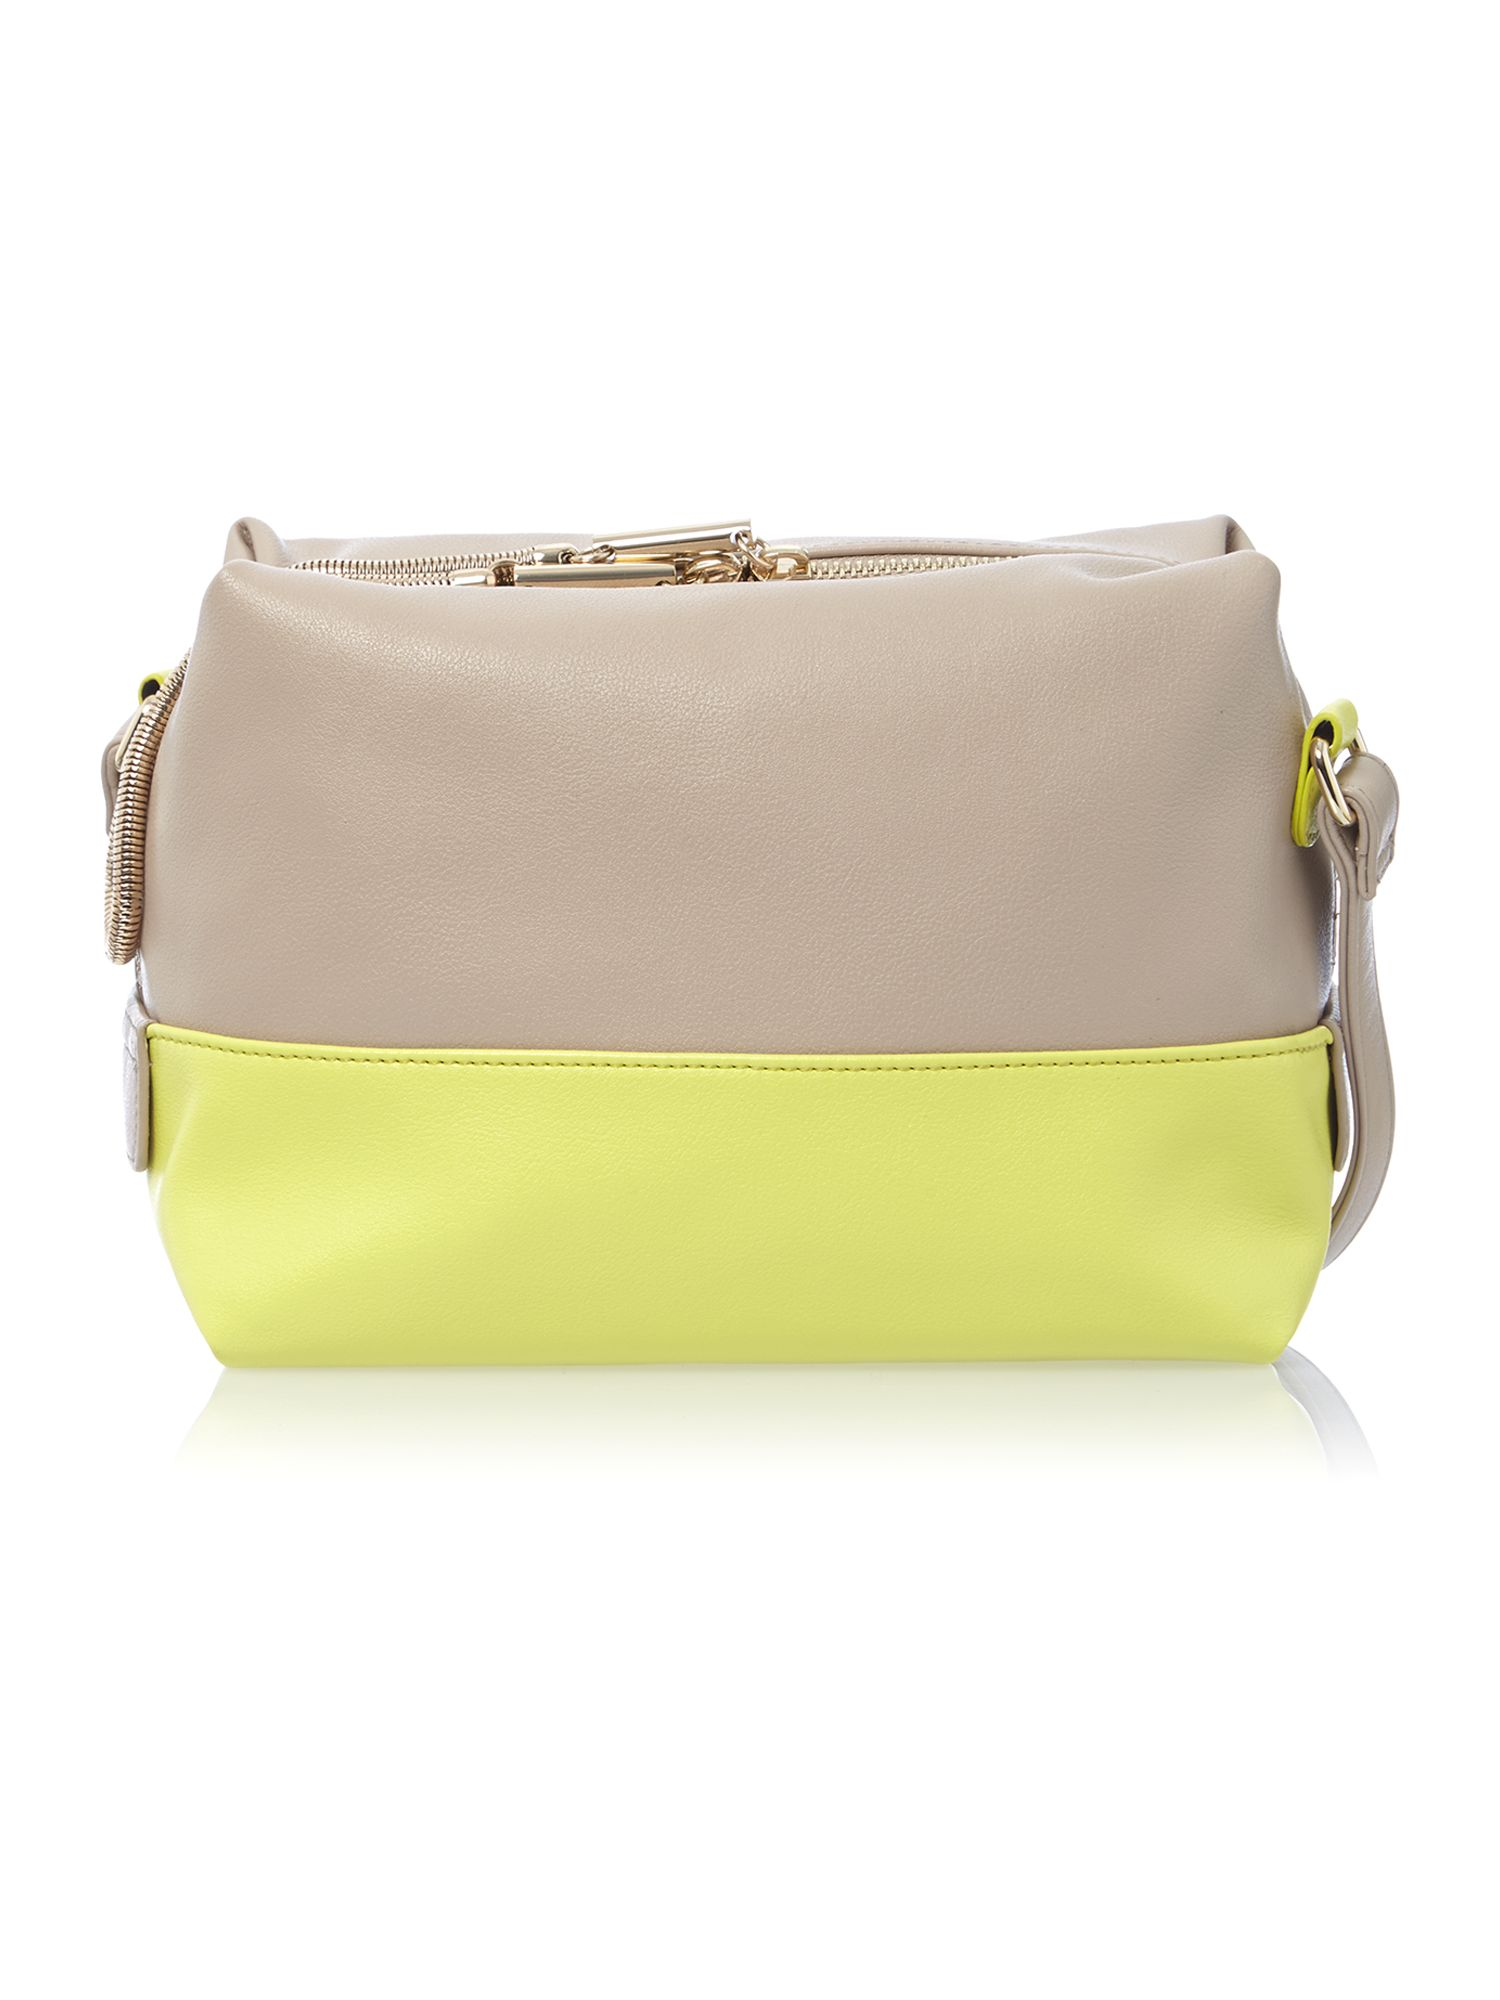 Febe multi-coloured crossbody bag